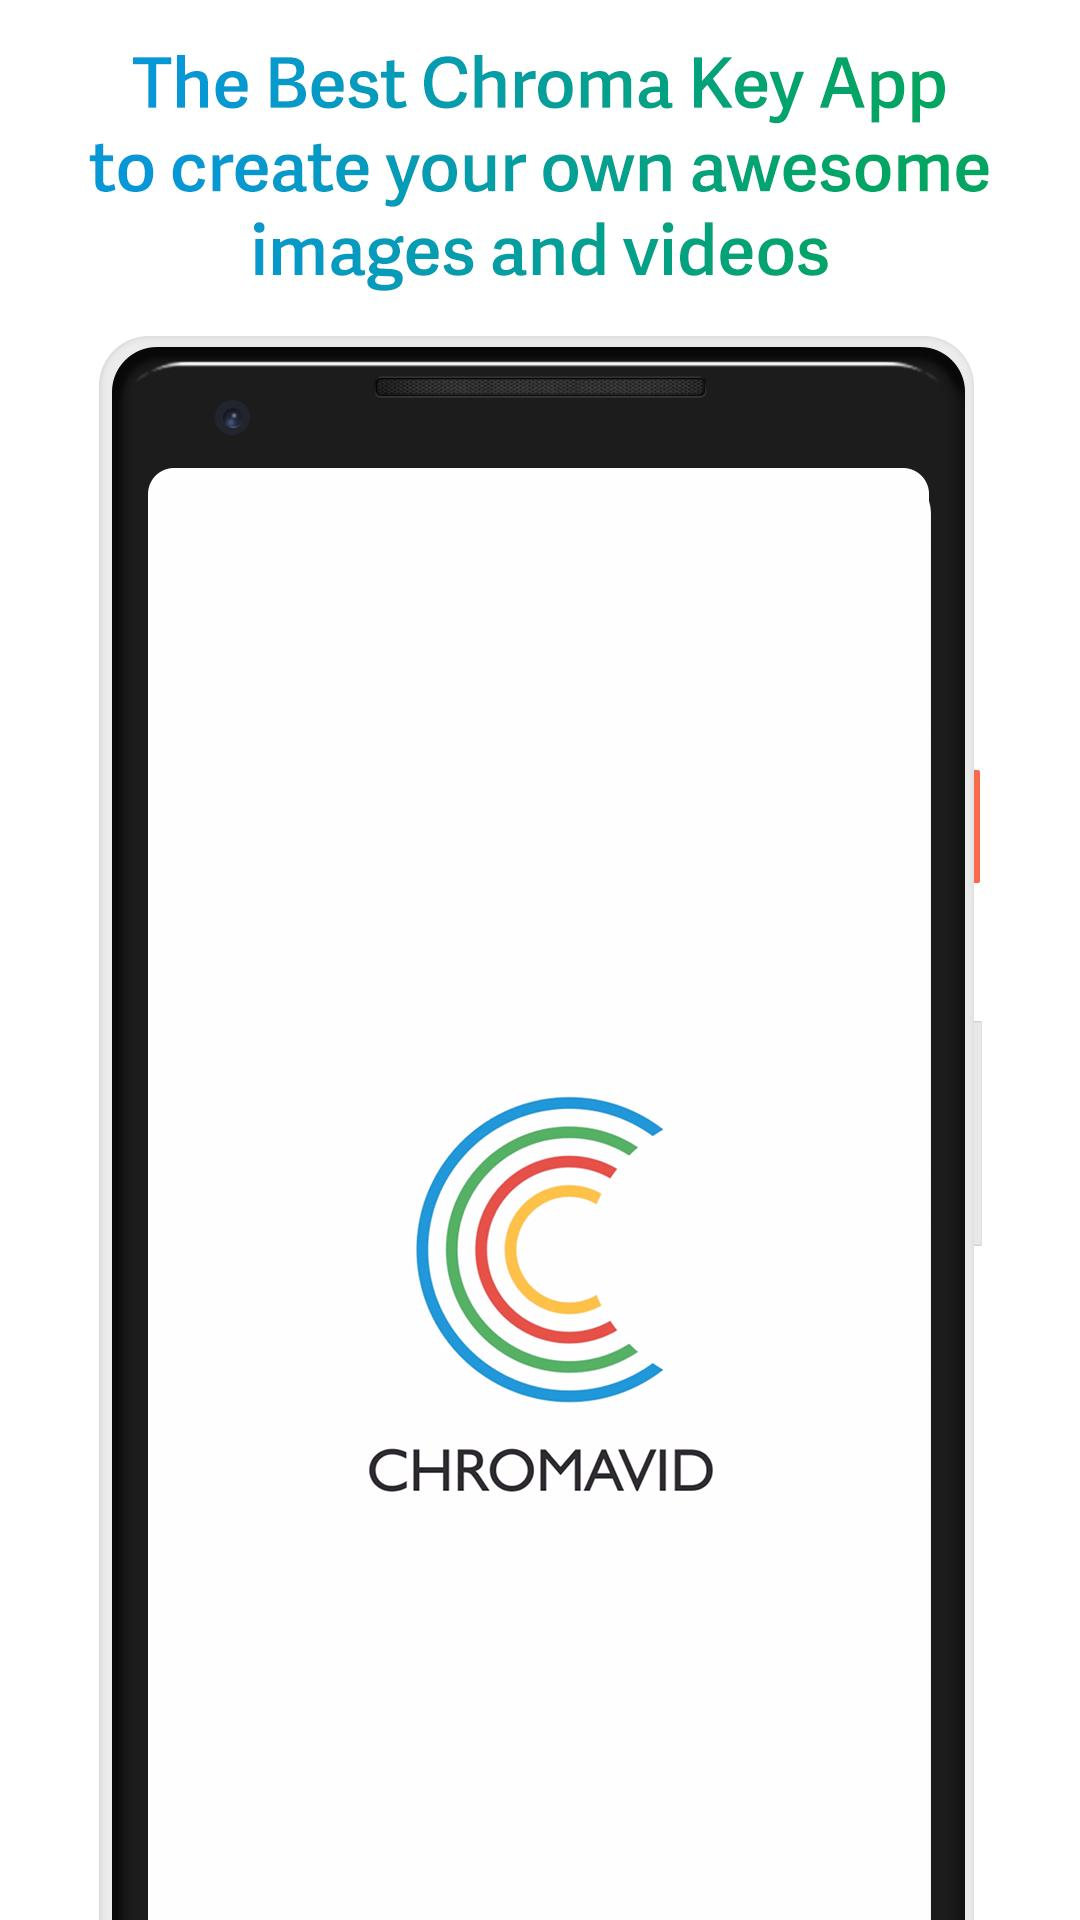 Chromavid for Android - APK Download